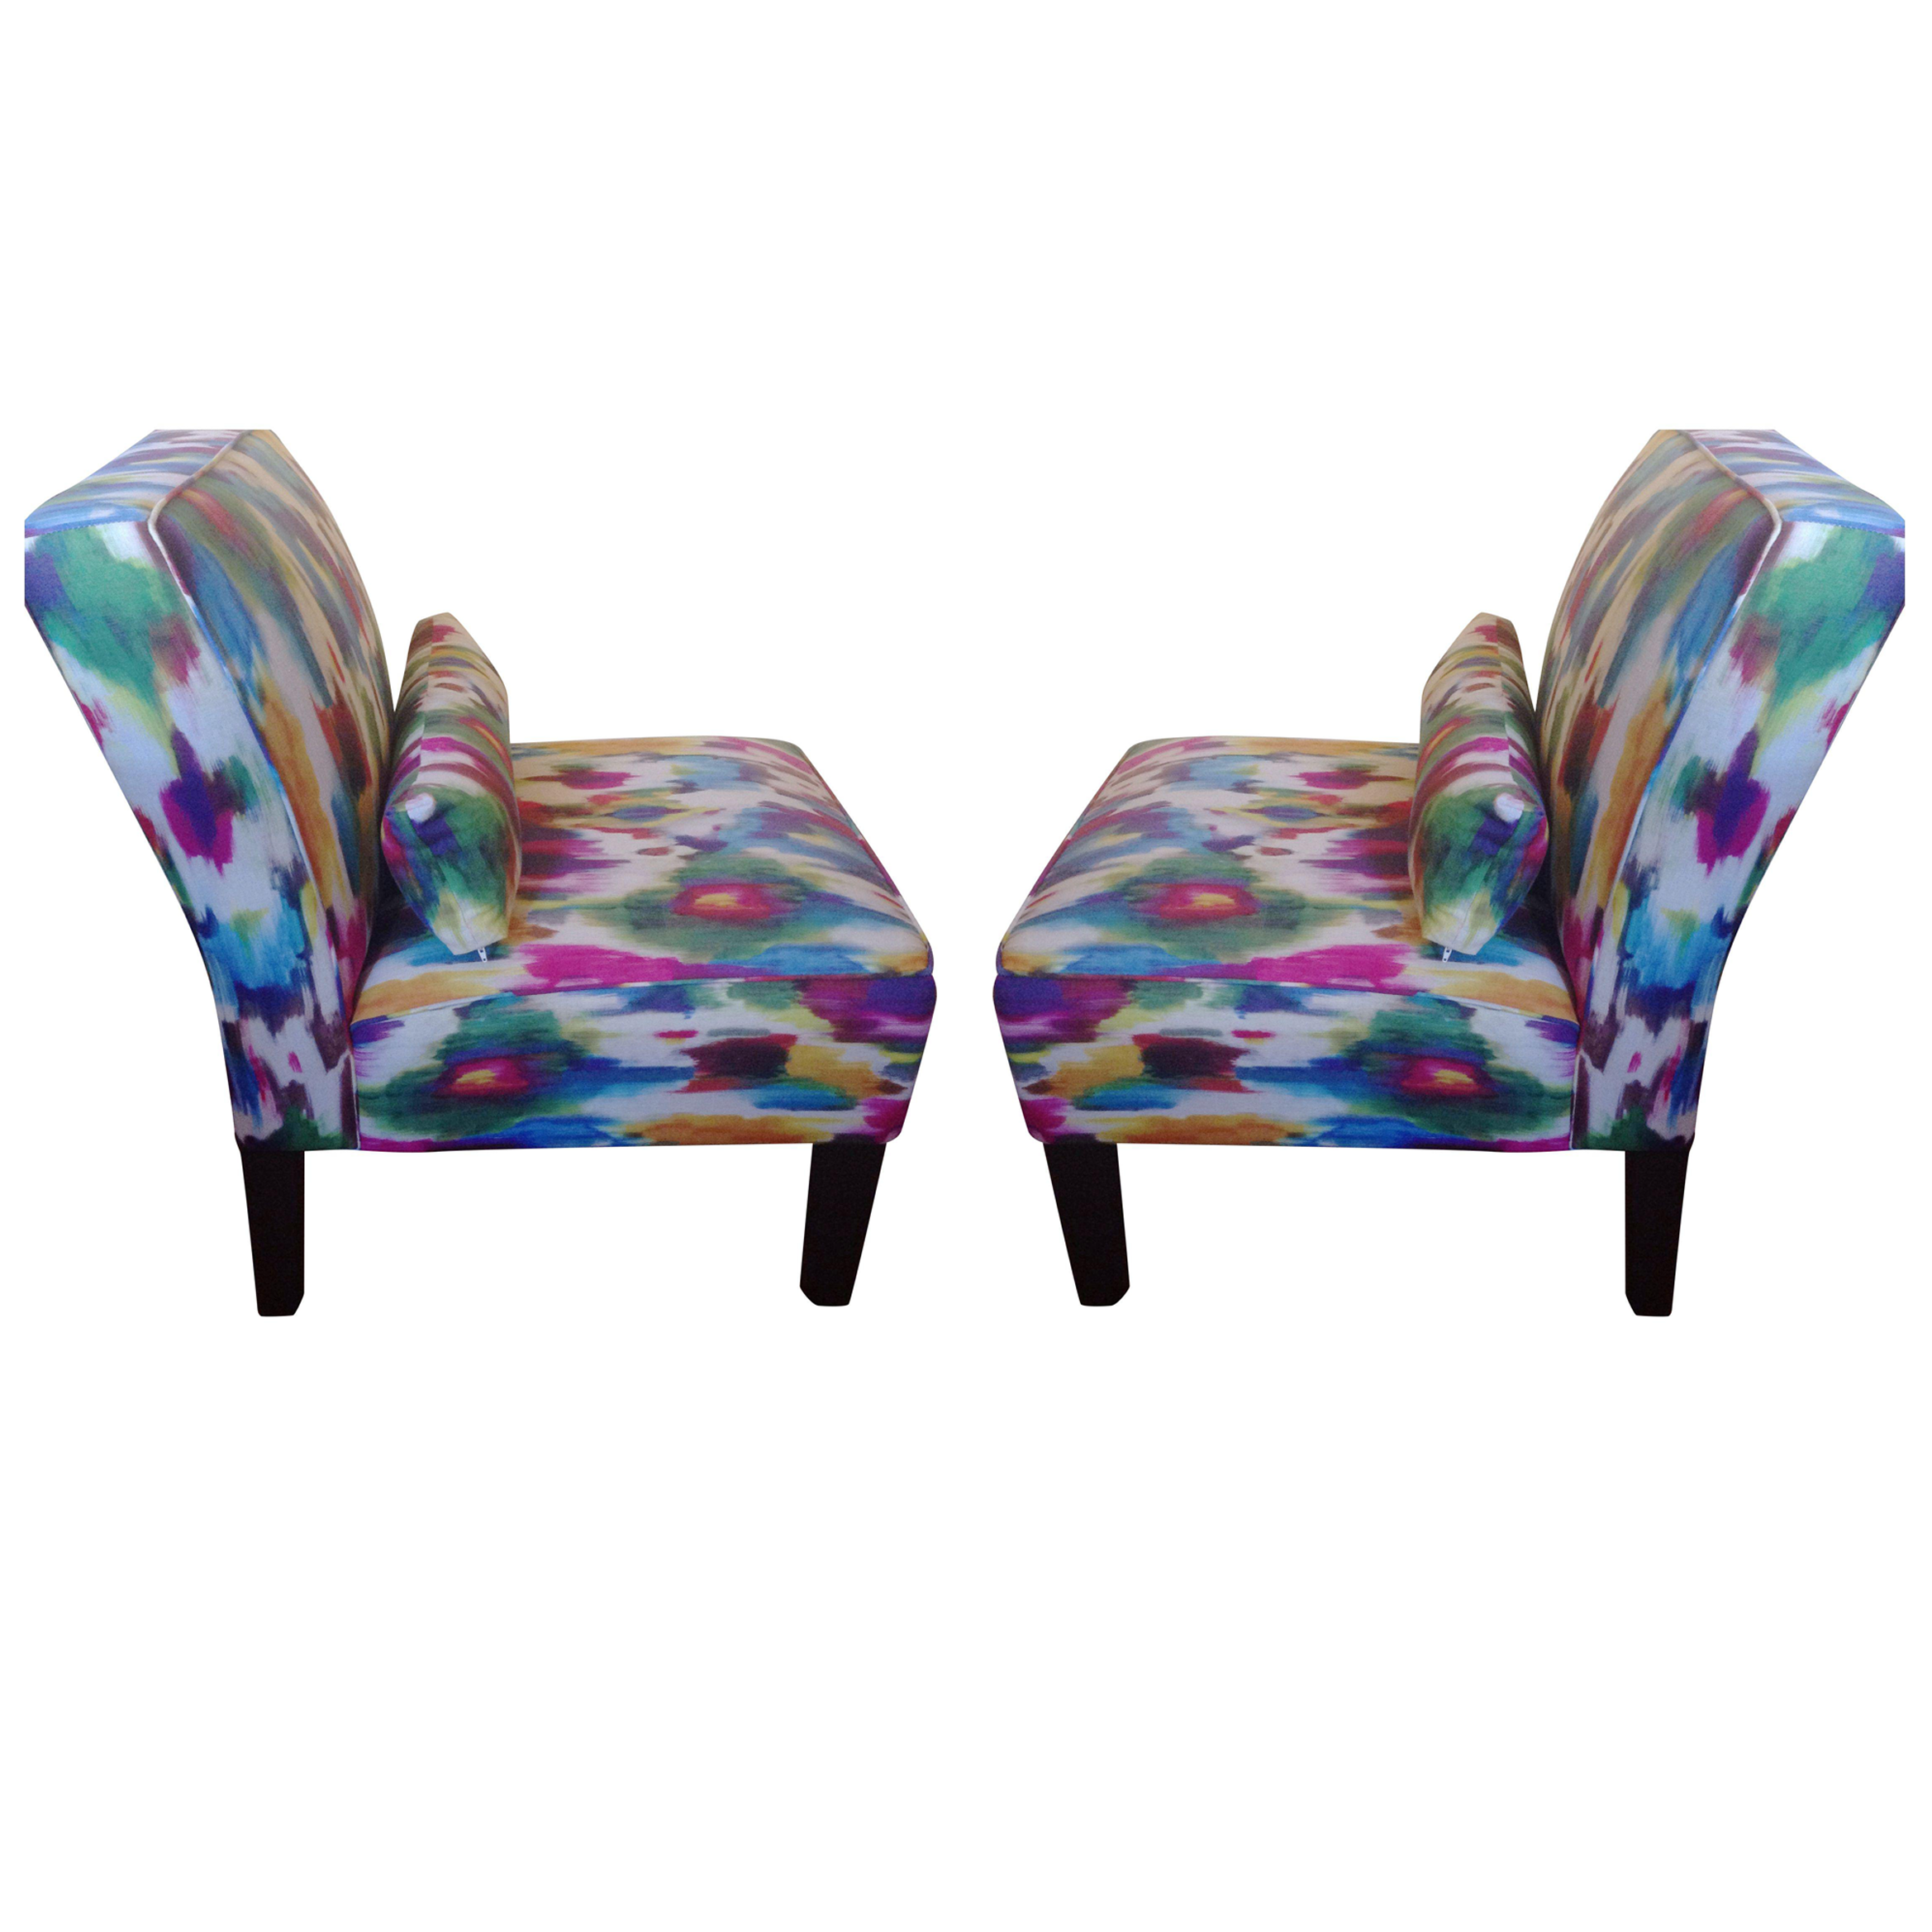 Multi Colored Accent Chairs A Pair Chairish